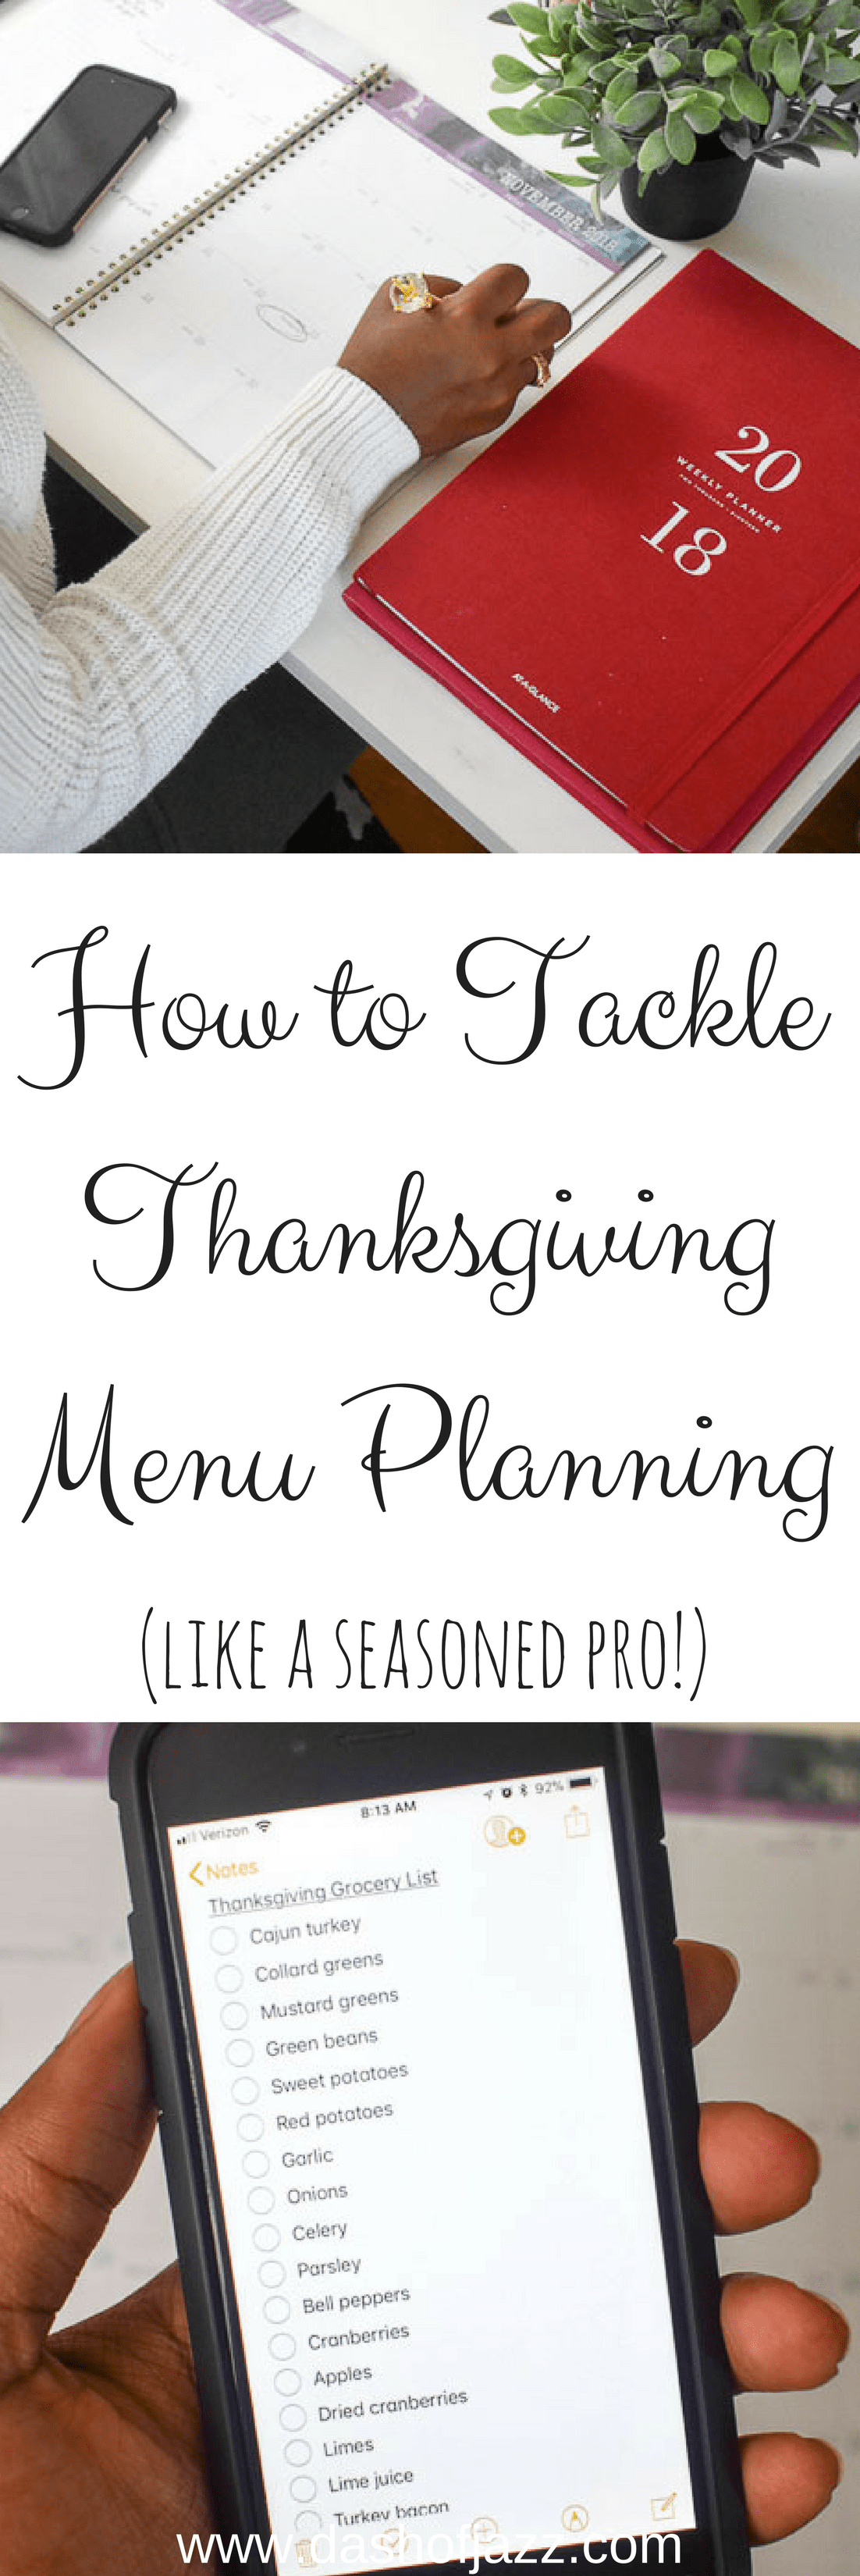 Tips for successfully tackling Thanksgiving menu planning like a seasoned hostess with the mostest! Tutorial by Dash of Jazz and sponsored by At-A-Glance planners. #MyAAG #IC #ad